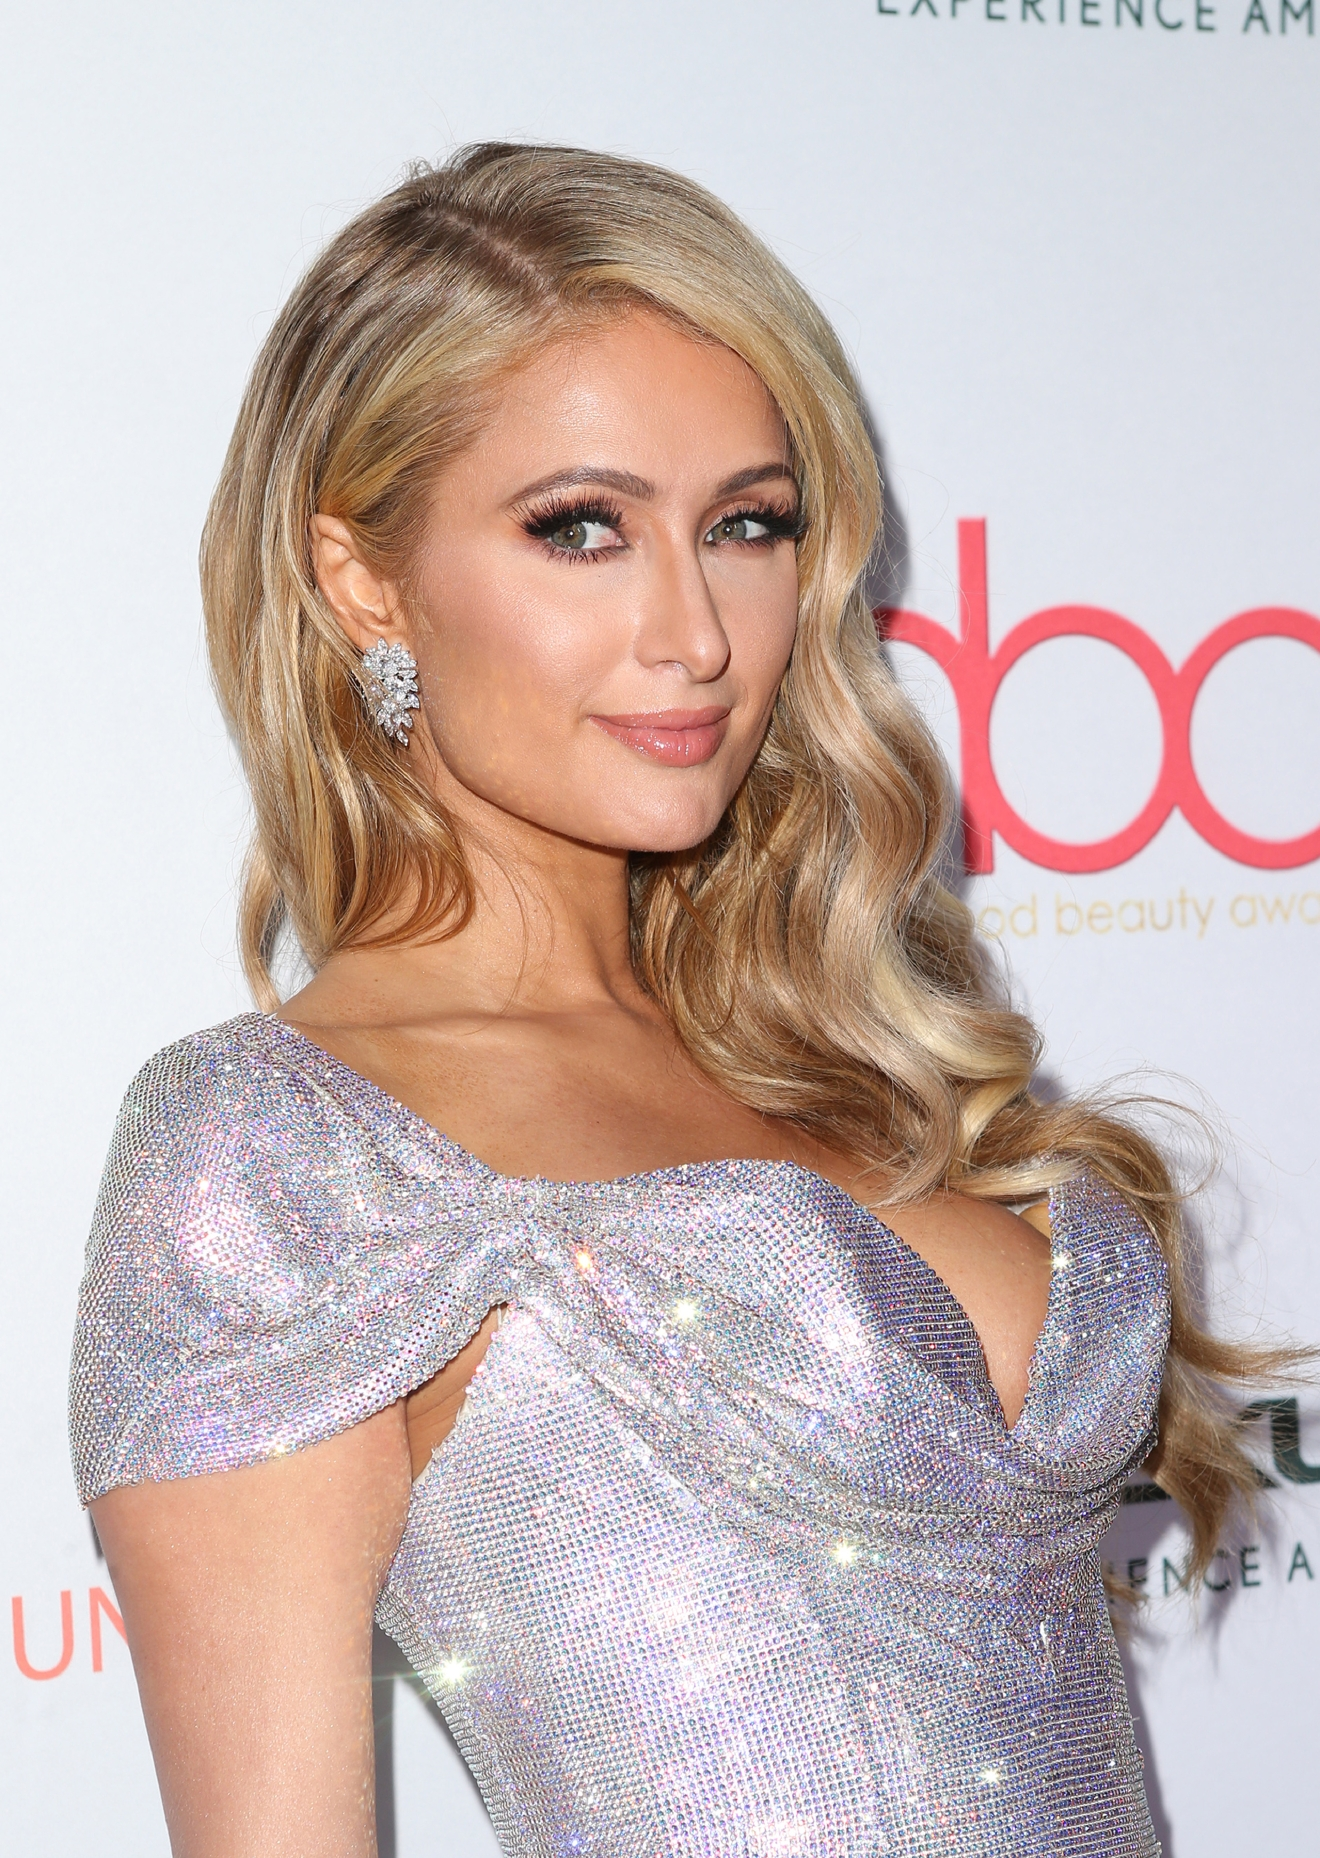 3rd Annual Hollywood Beauty Awards                                    Featuring: Paris Hilton                  Where: Hollywood, California, United States                  When: 19 Feb 2017                  Credit: FayesVision/WENN.com